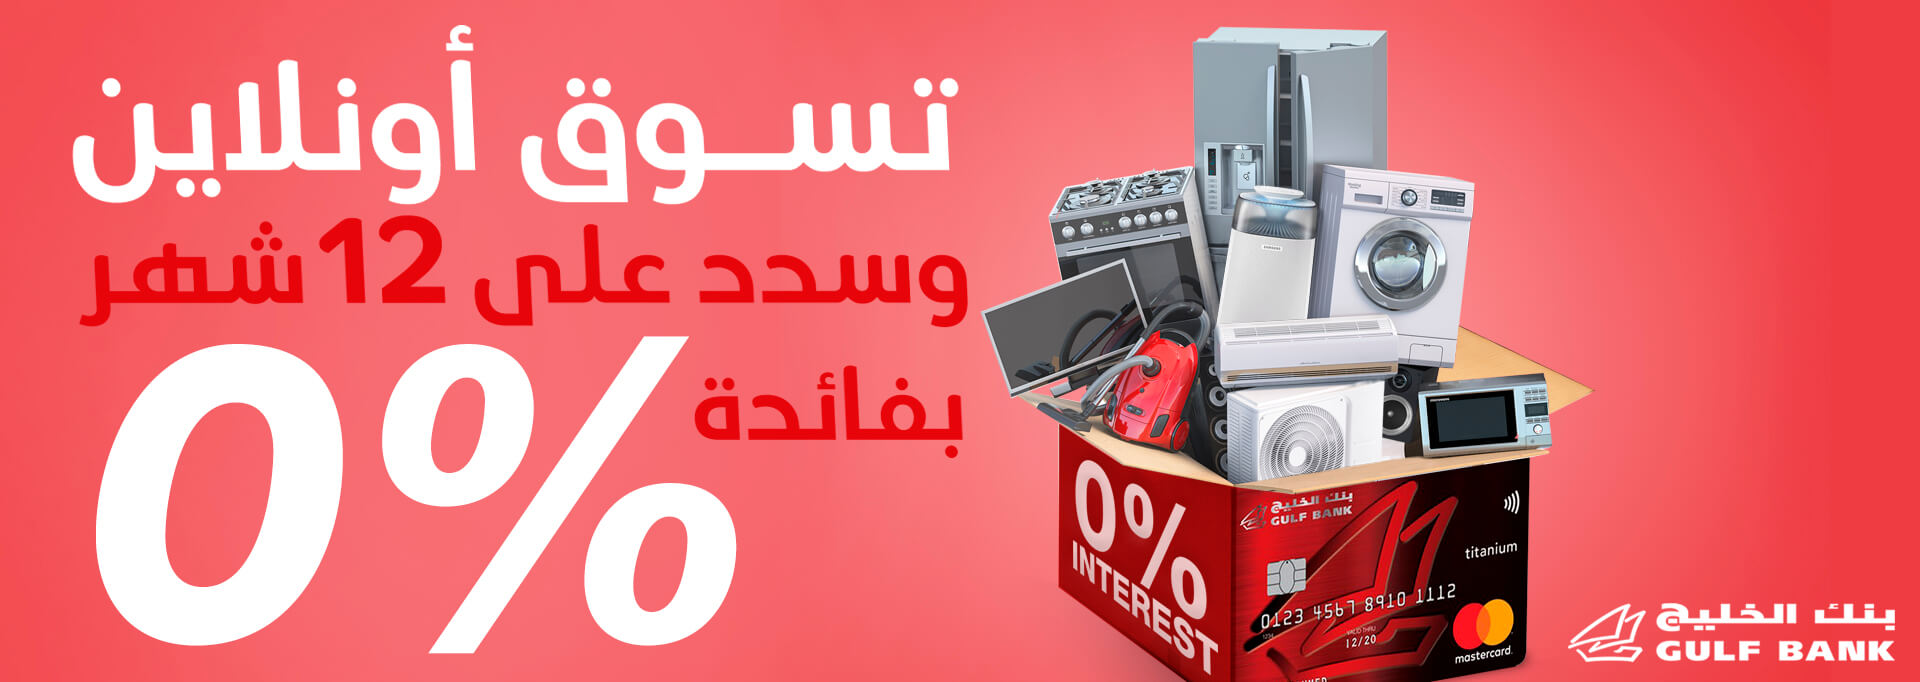 january offers deals discount electronics online kuwait mobile tv fridge washing machine